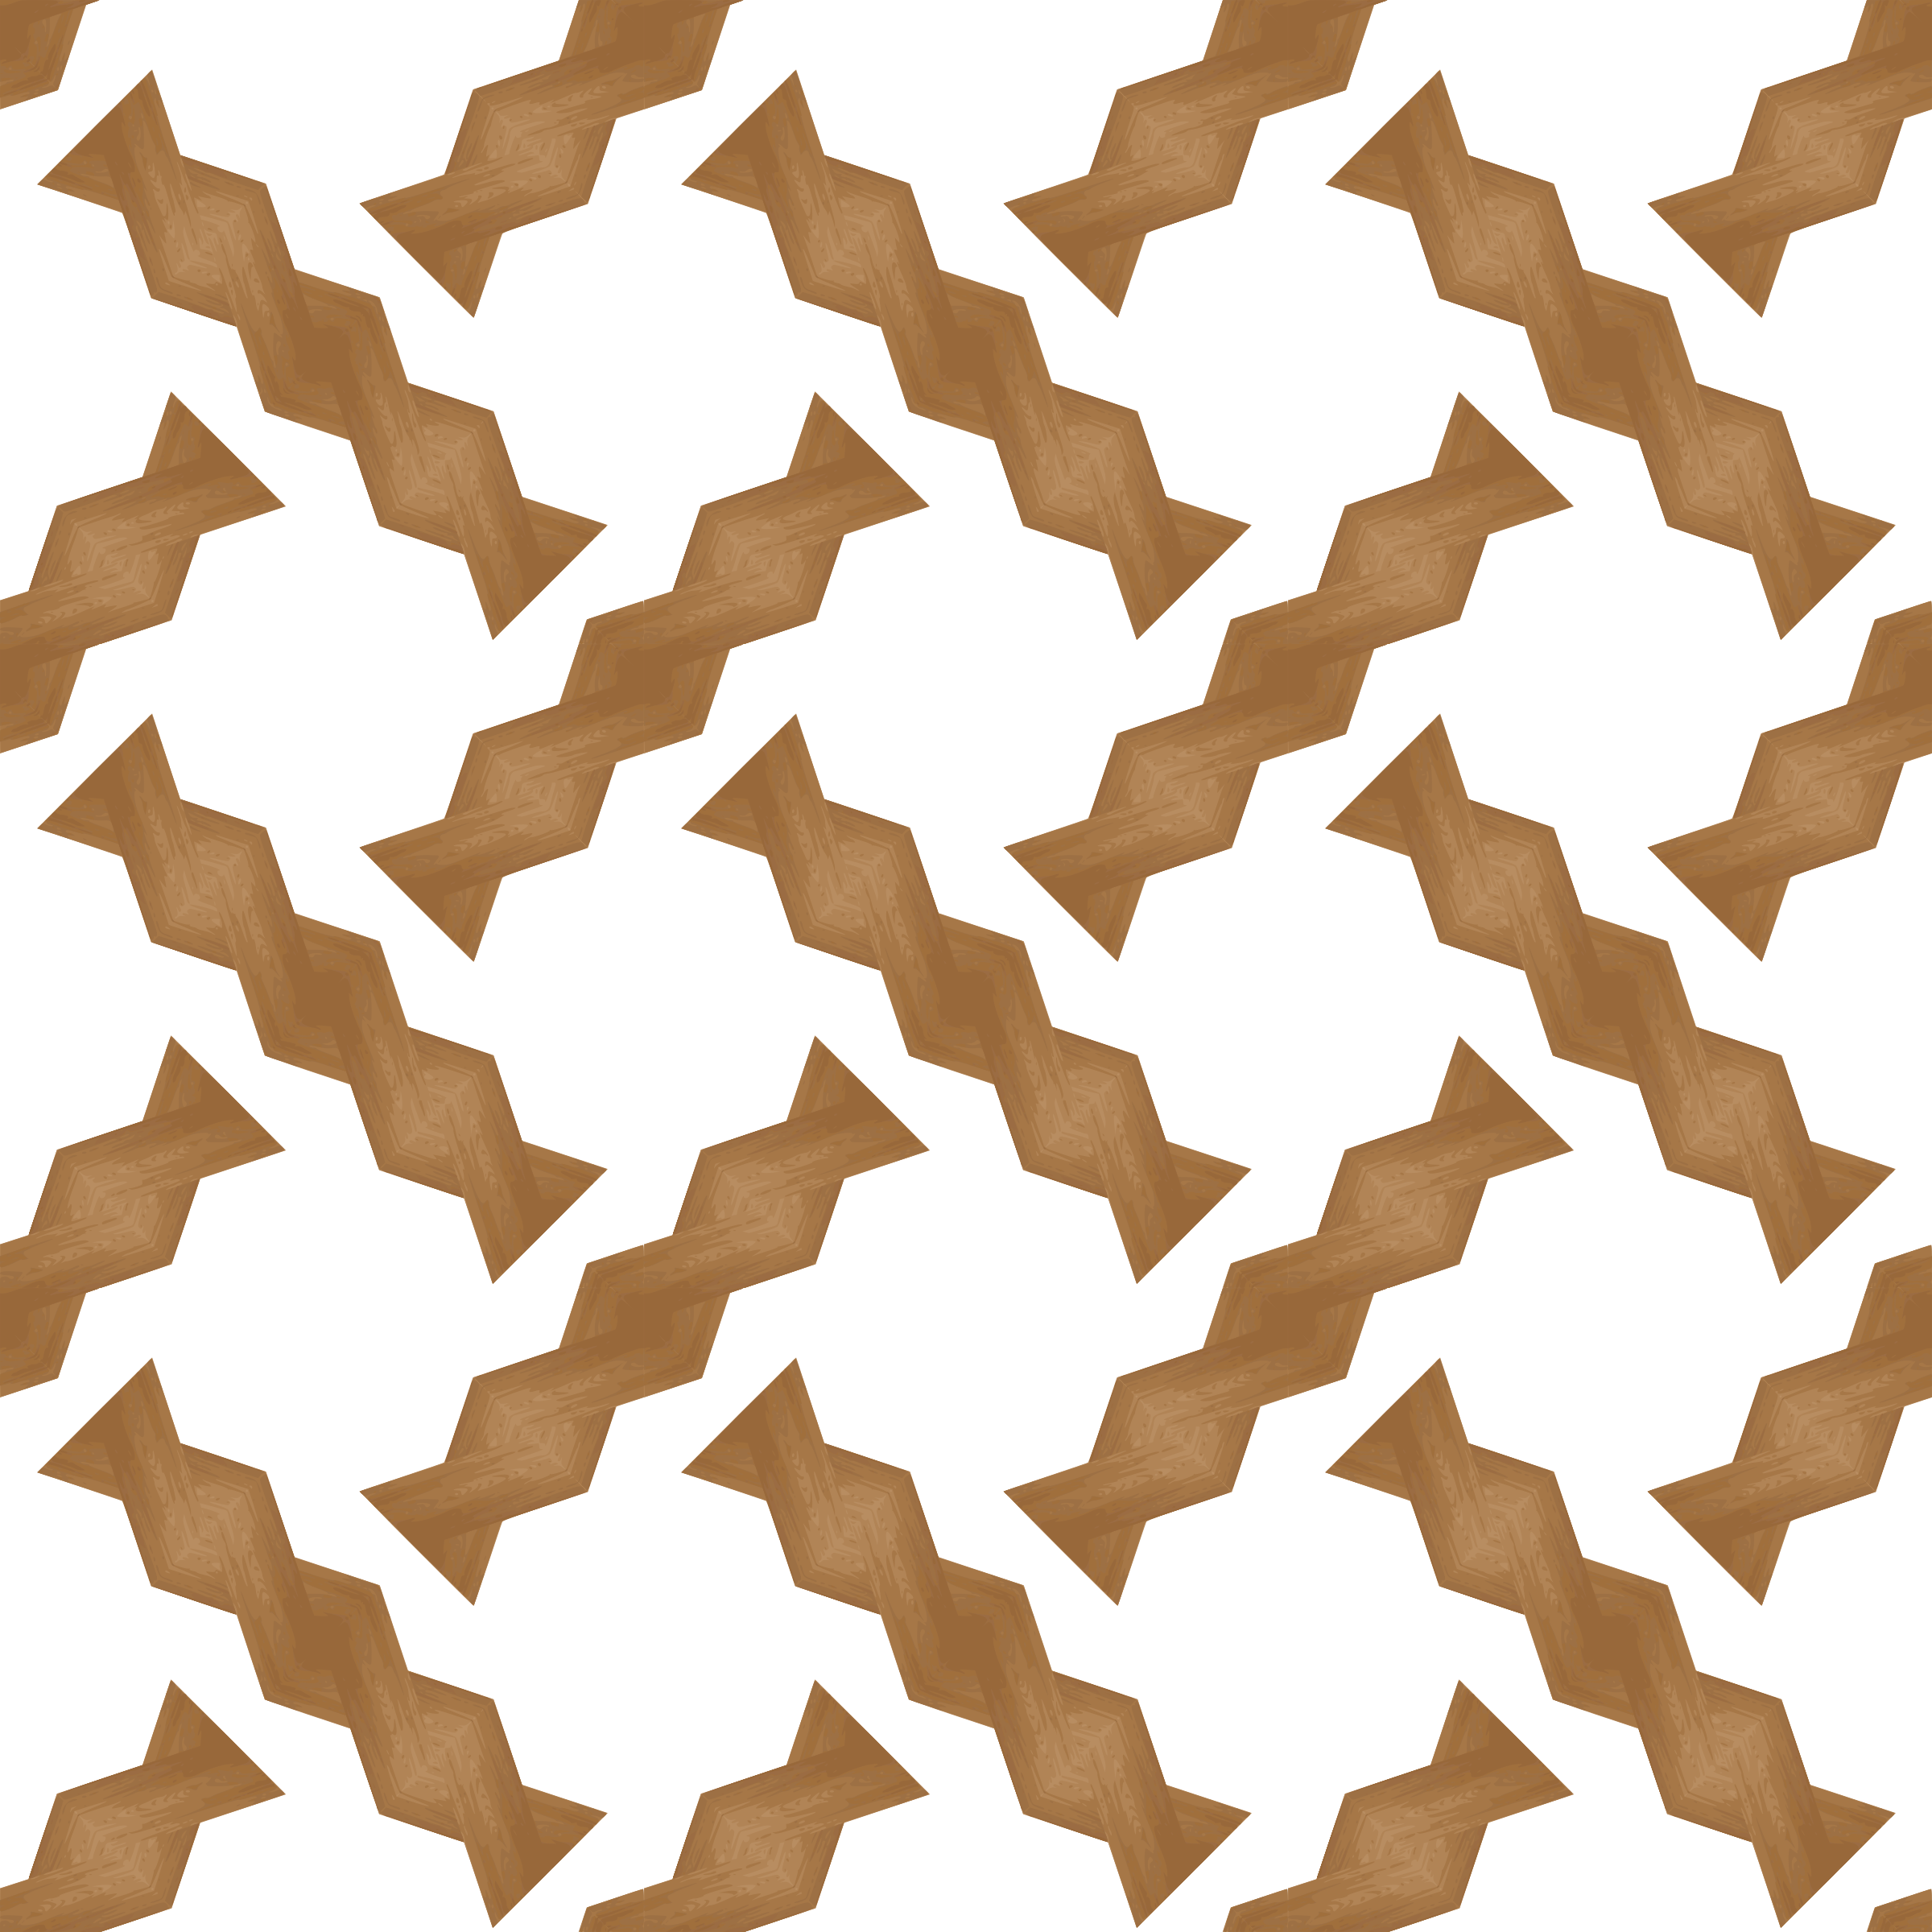 Wood pattern png. Clipart wooden material geometry